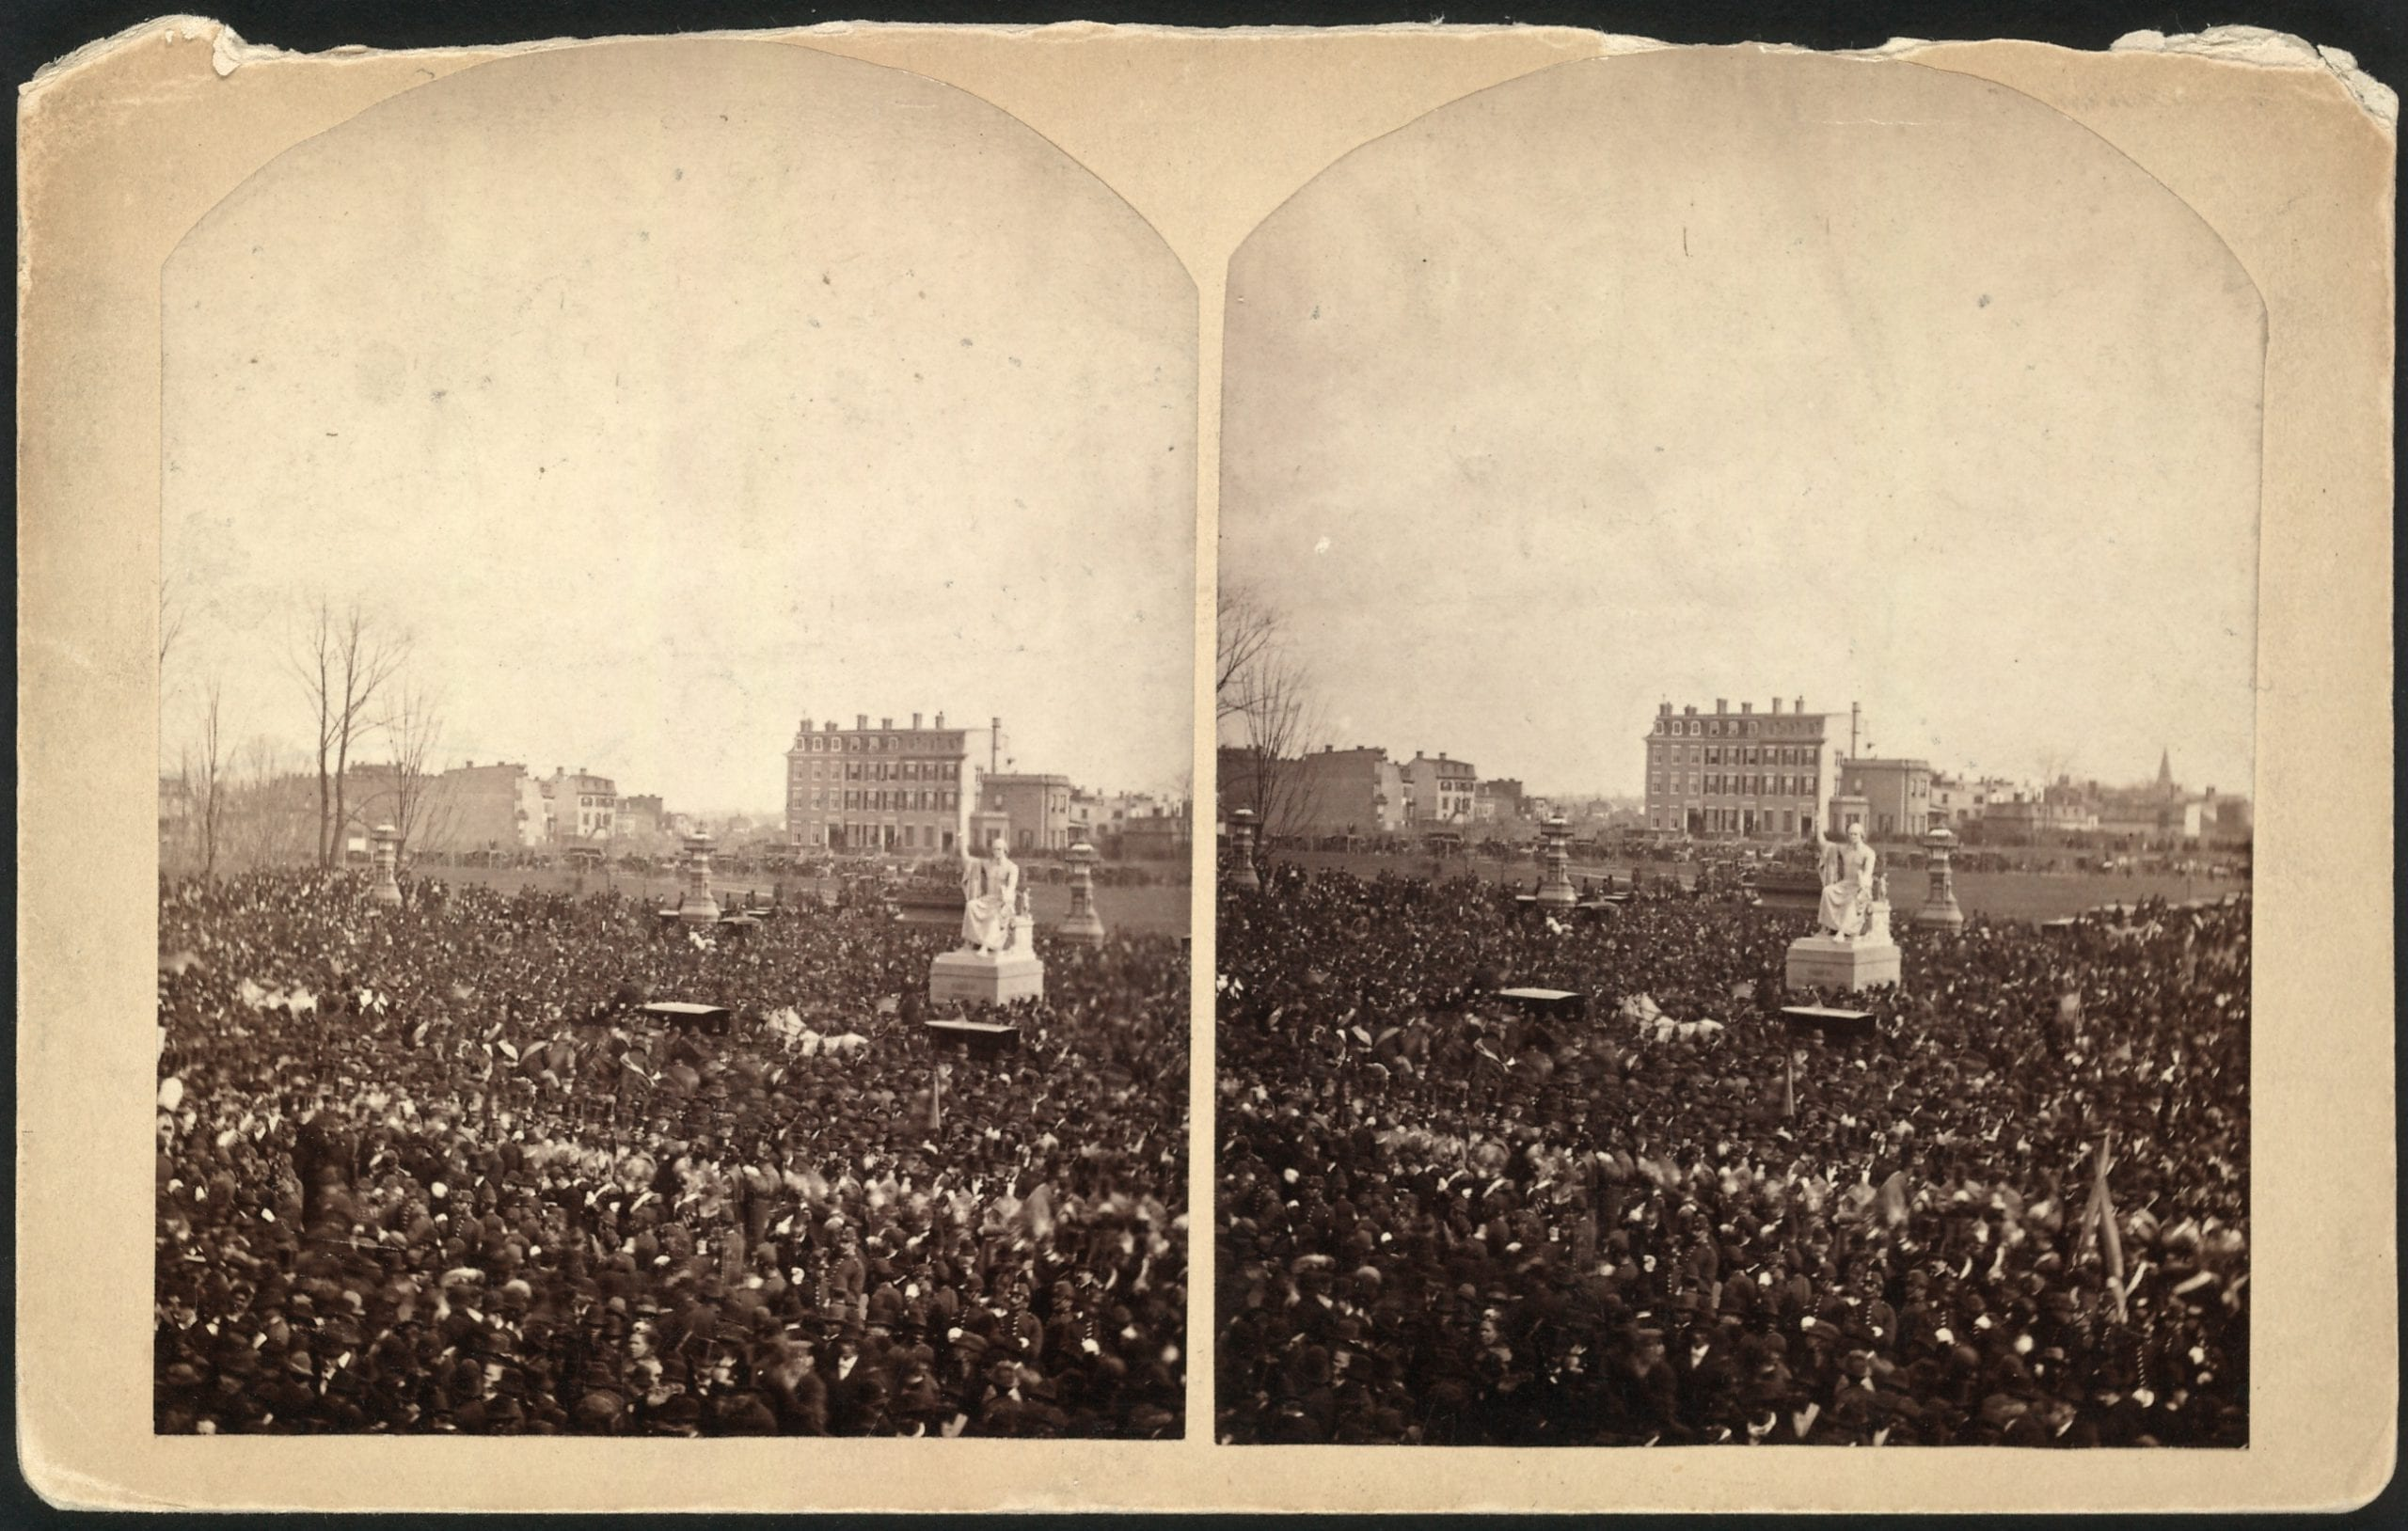 Crowd at the inauguration of Rutherford B. Hayes, on the east front grounds of the U.S. Capitol, surrounding Horatio Greenough's statue of George Washington, March 5, 1877. Library of Congress. Prints and Photographs Division. Reproduction number: LC-USZ62-104931 (b&w film copy neg.).